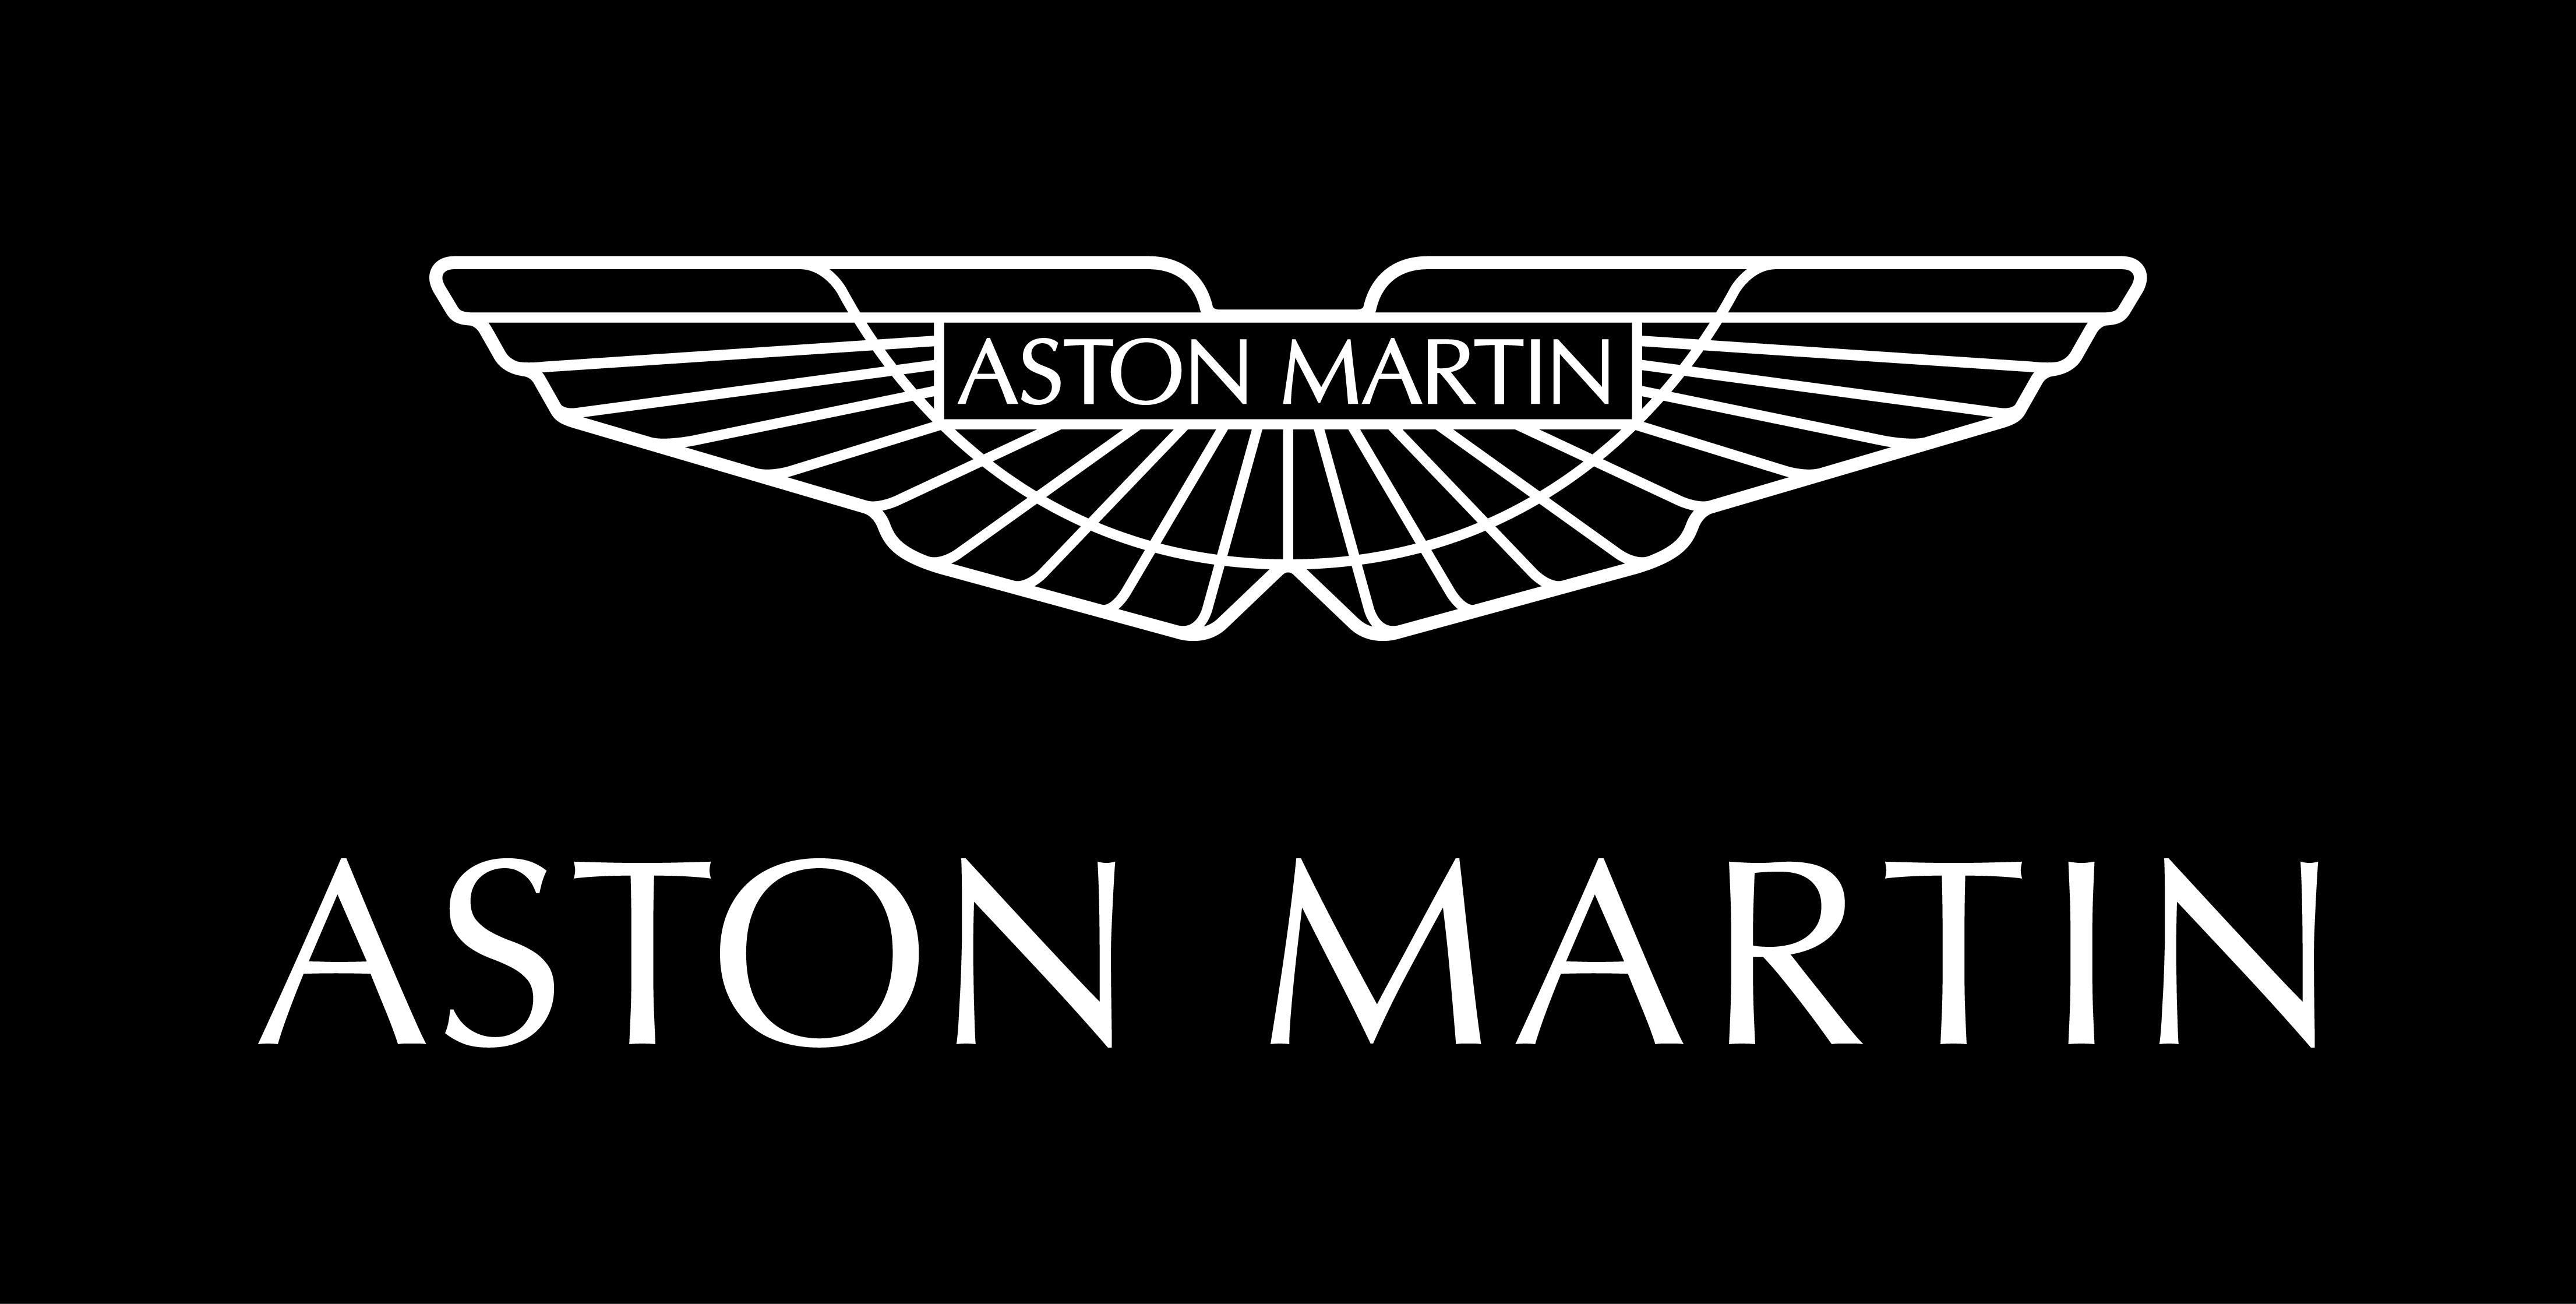 2015 Aston Martin Logo White on Black RGB